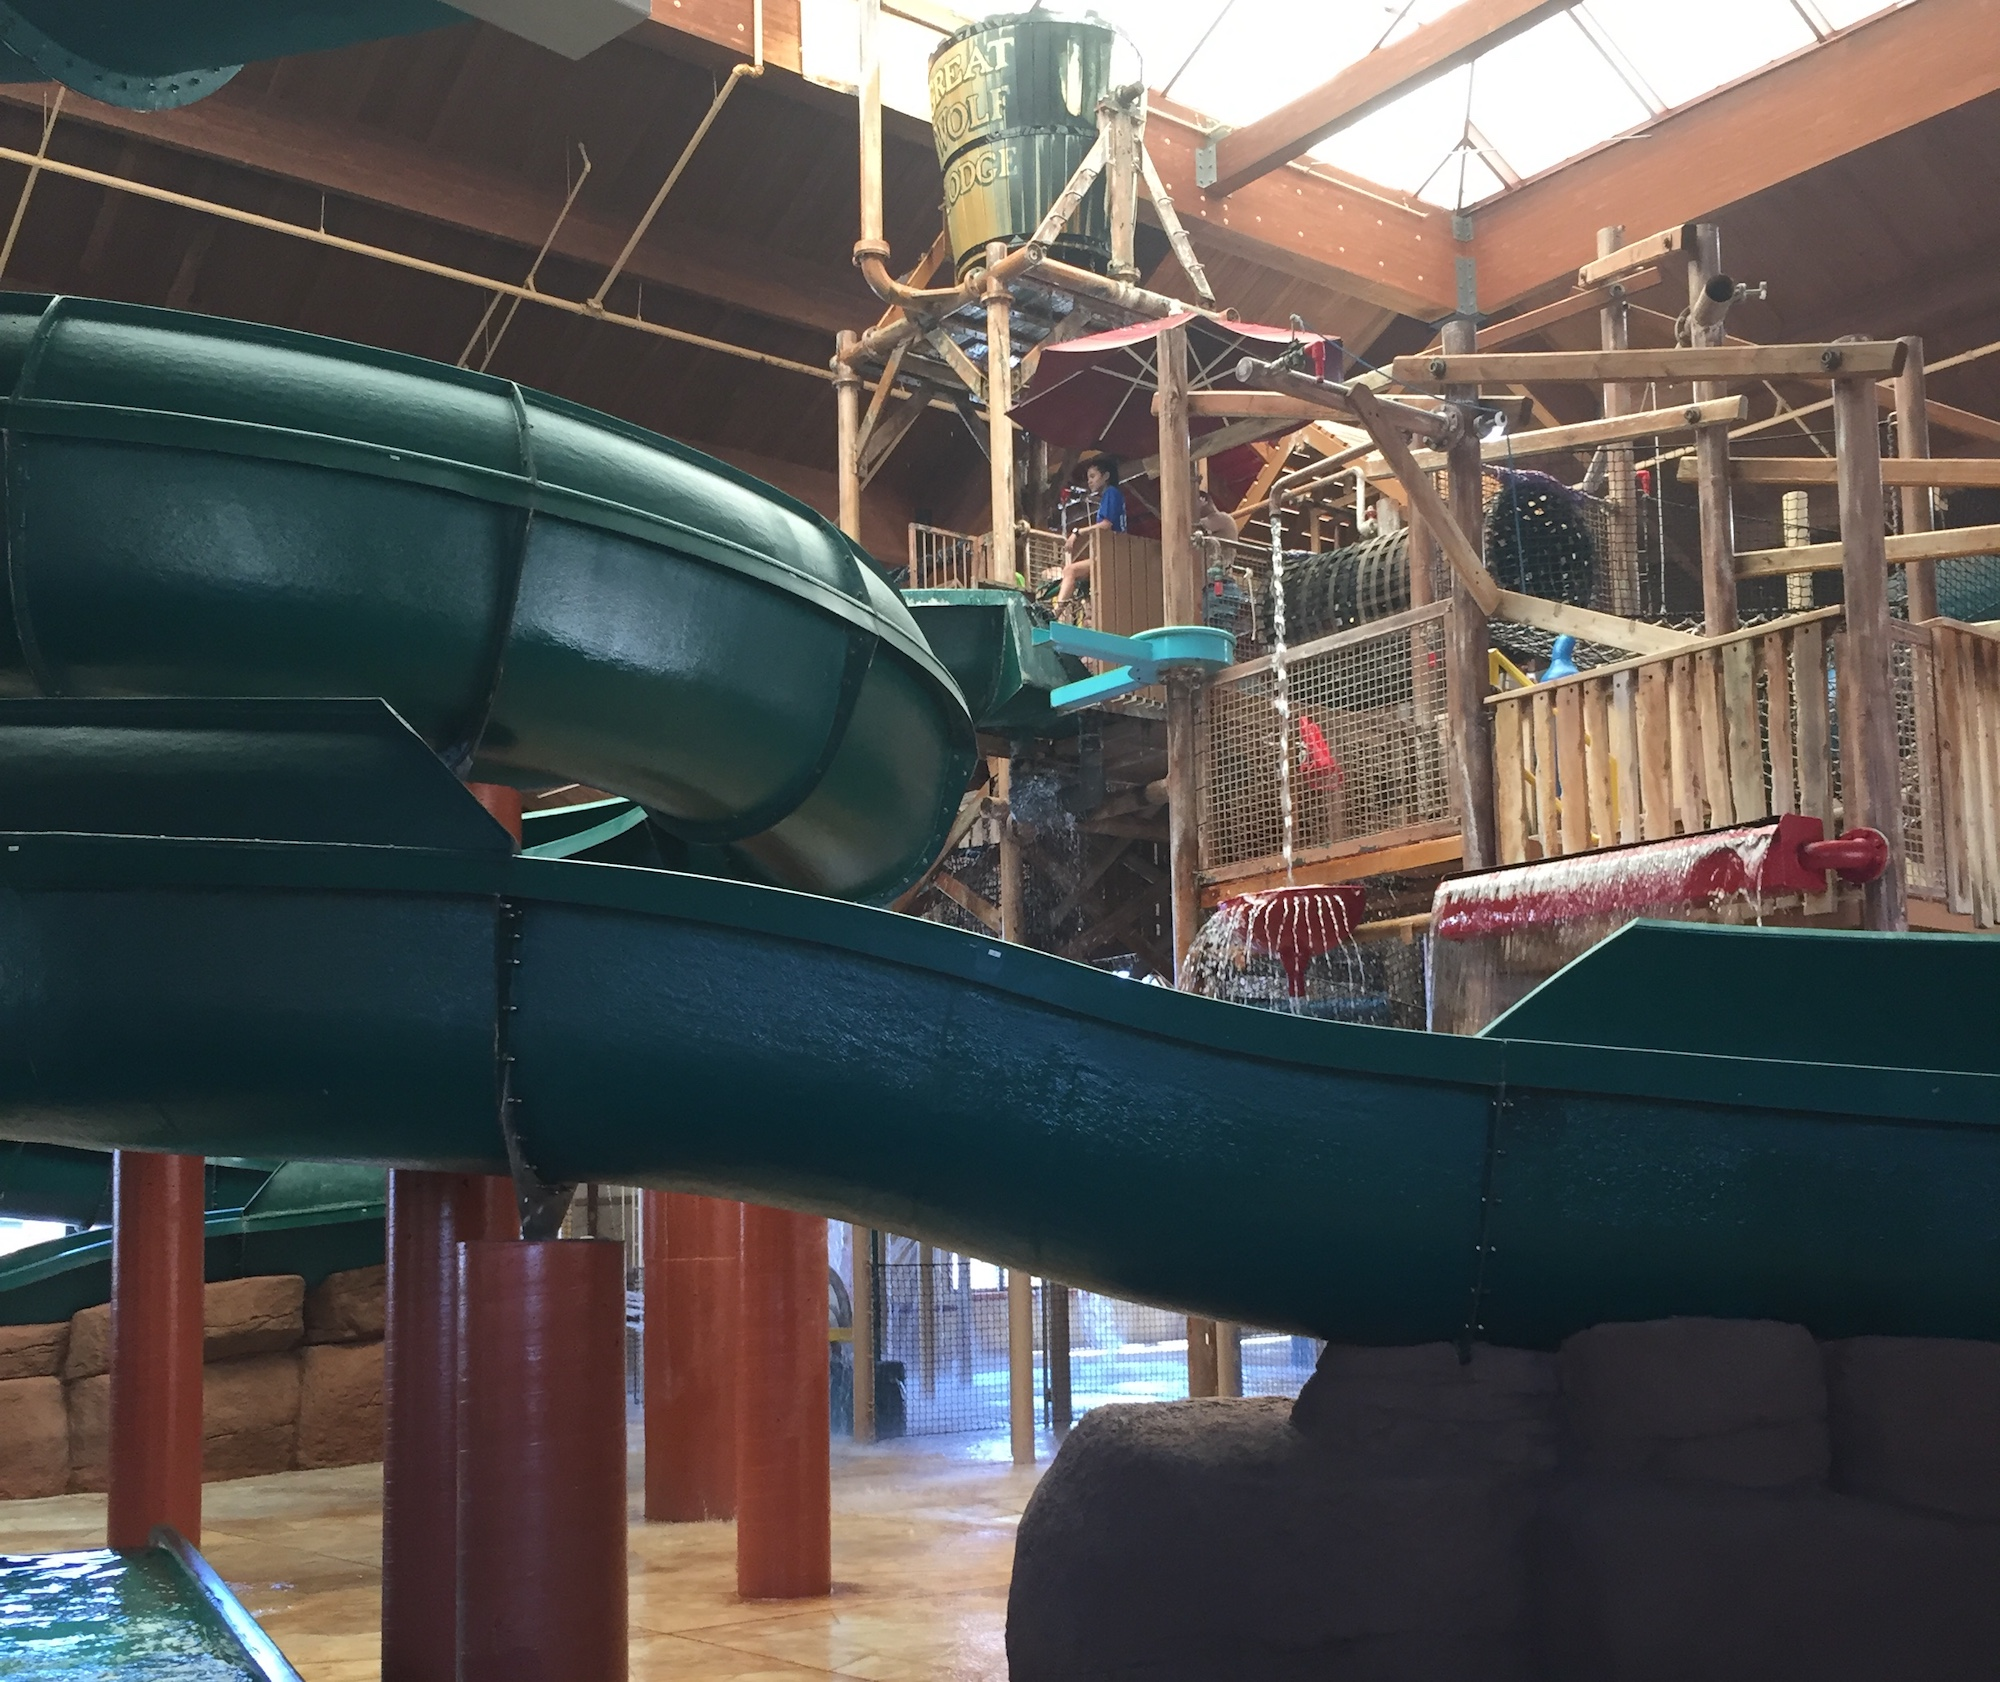 Slide away at indoor waterparks in the Midwest